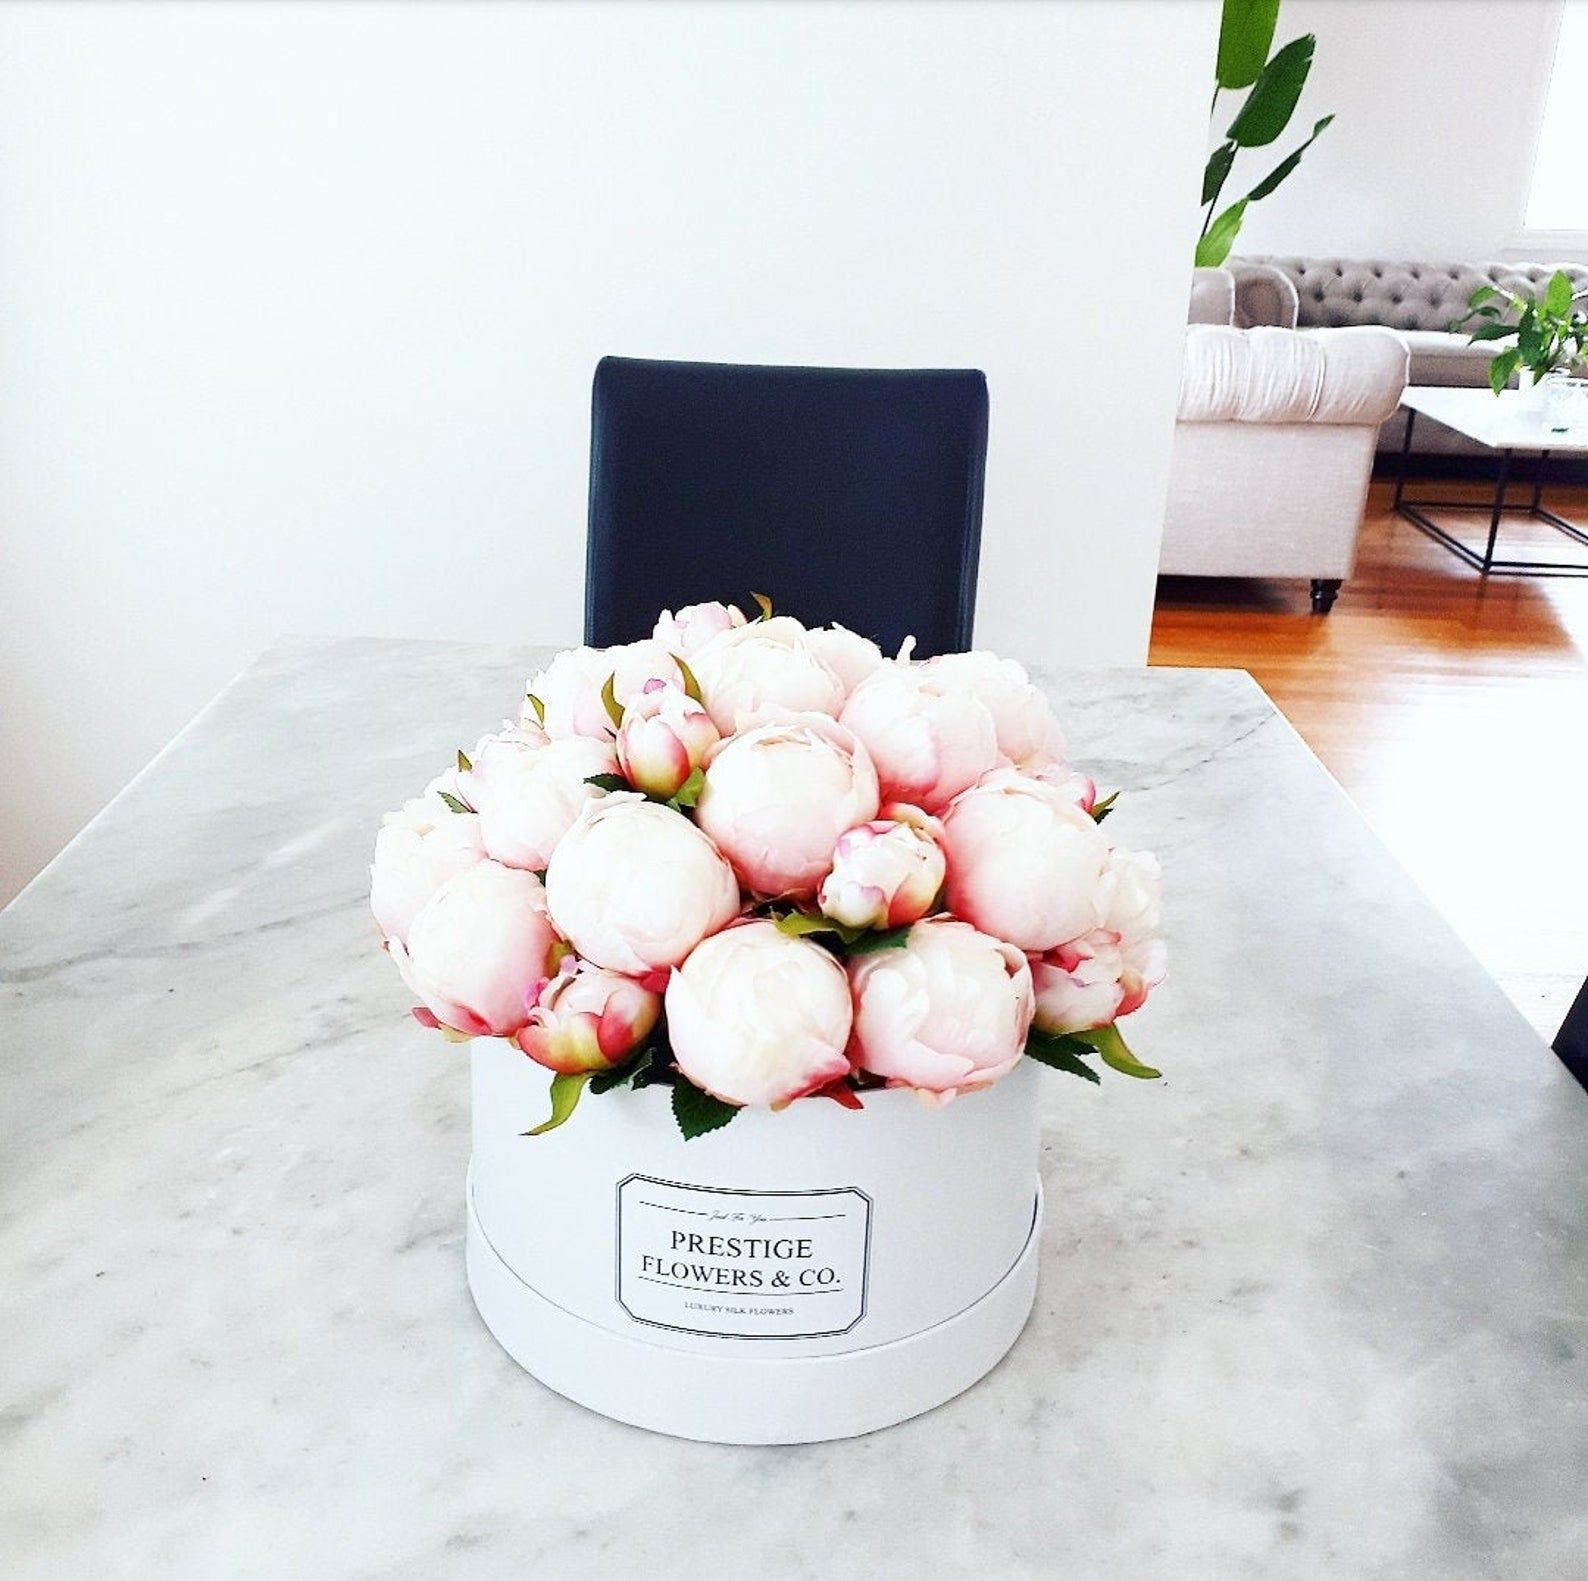 Flower Box Silk Peonies Pink Artificial Flower Arrangement Etsy In 2020 Artificial Flower Arrangements Flower Arrangements Silk Peonies